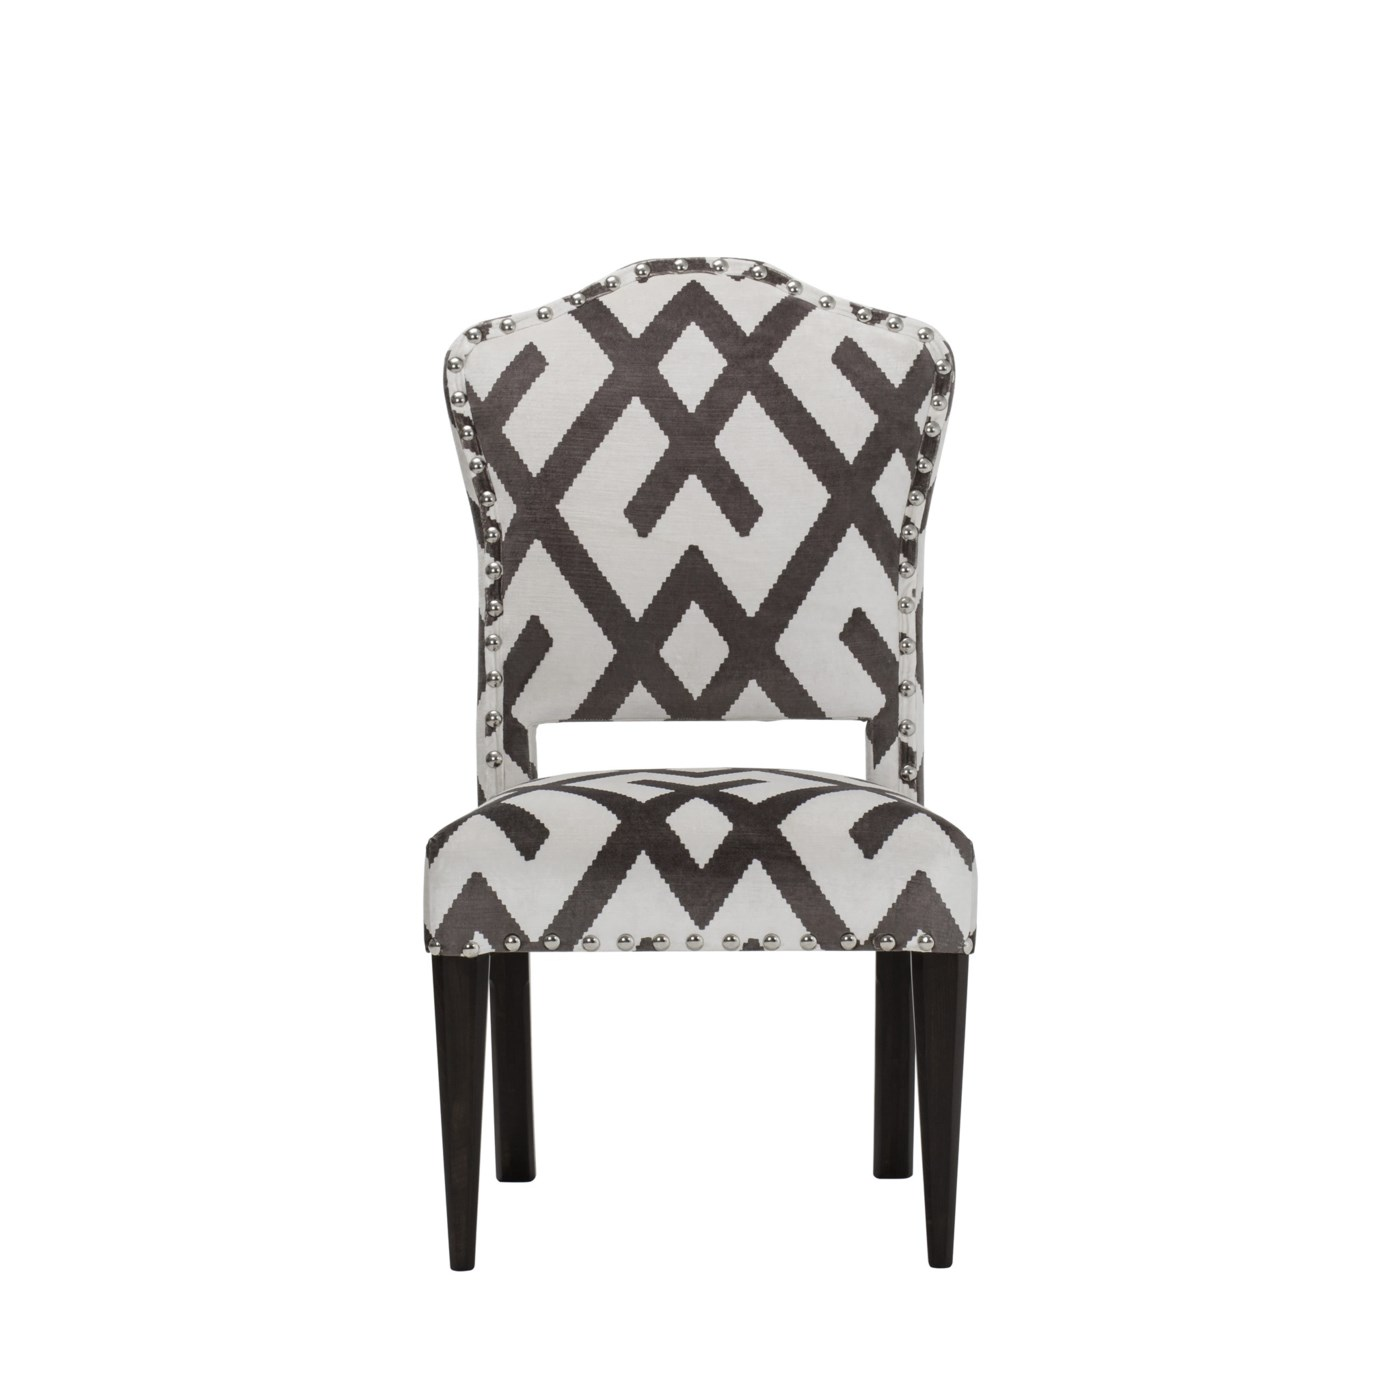 Bacall Chair - Fitzroy Gray